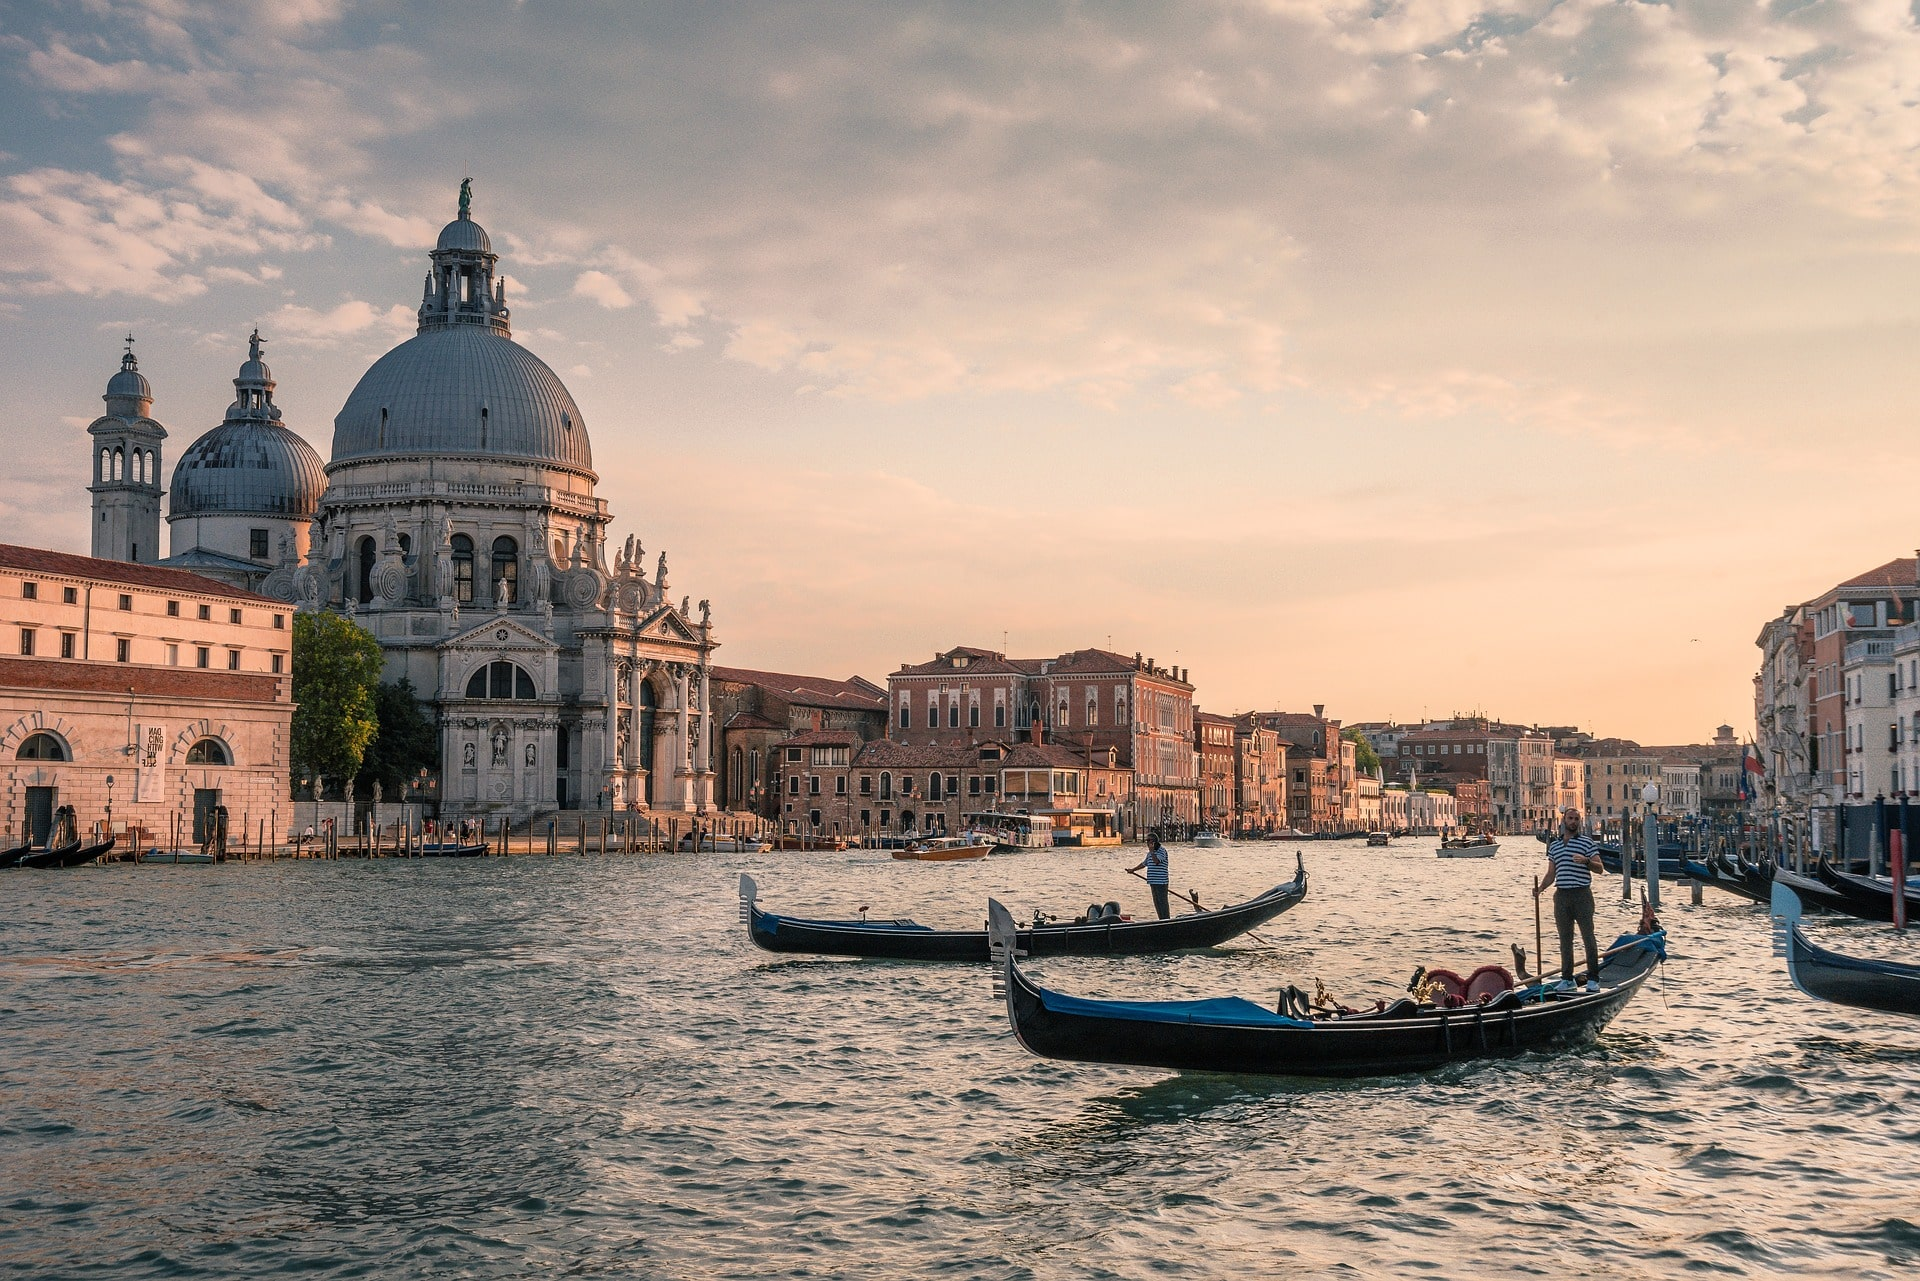 Where to stay in Italy for classic beauty and gorgeous canals? Venice!